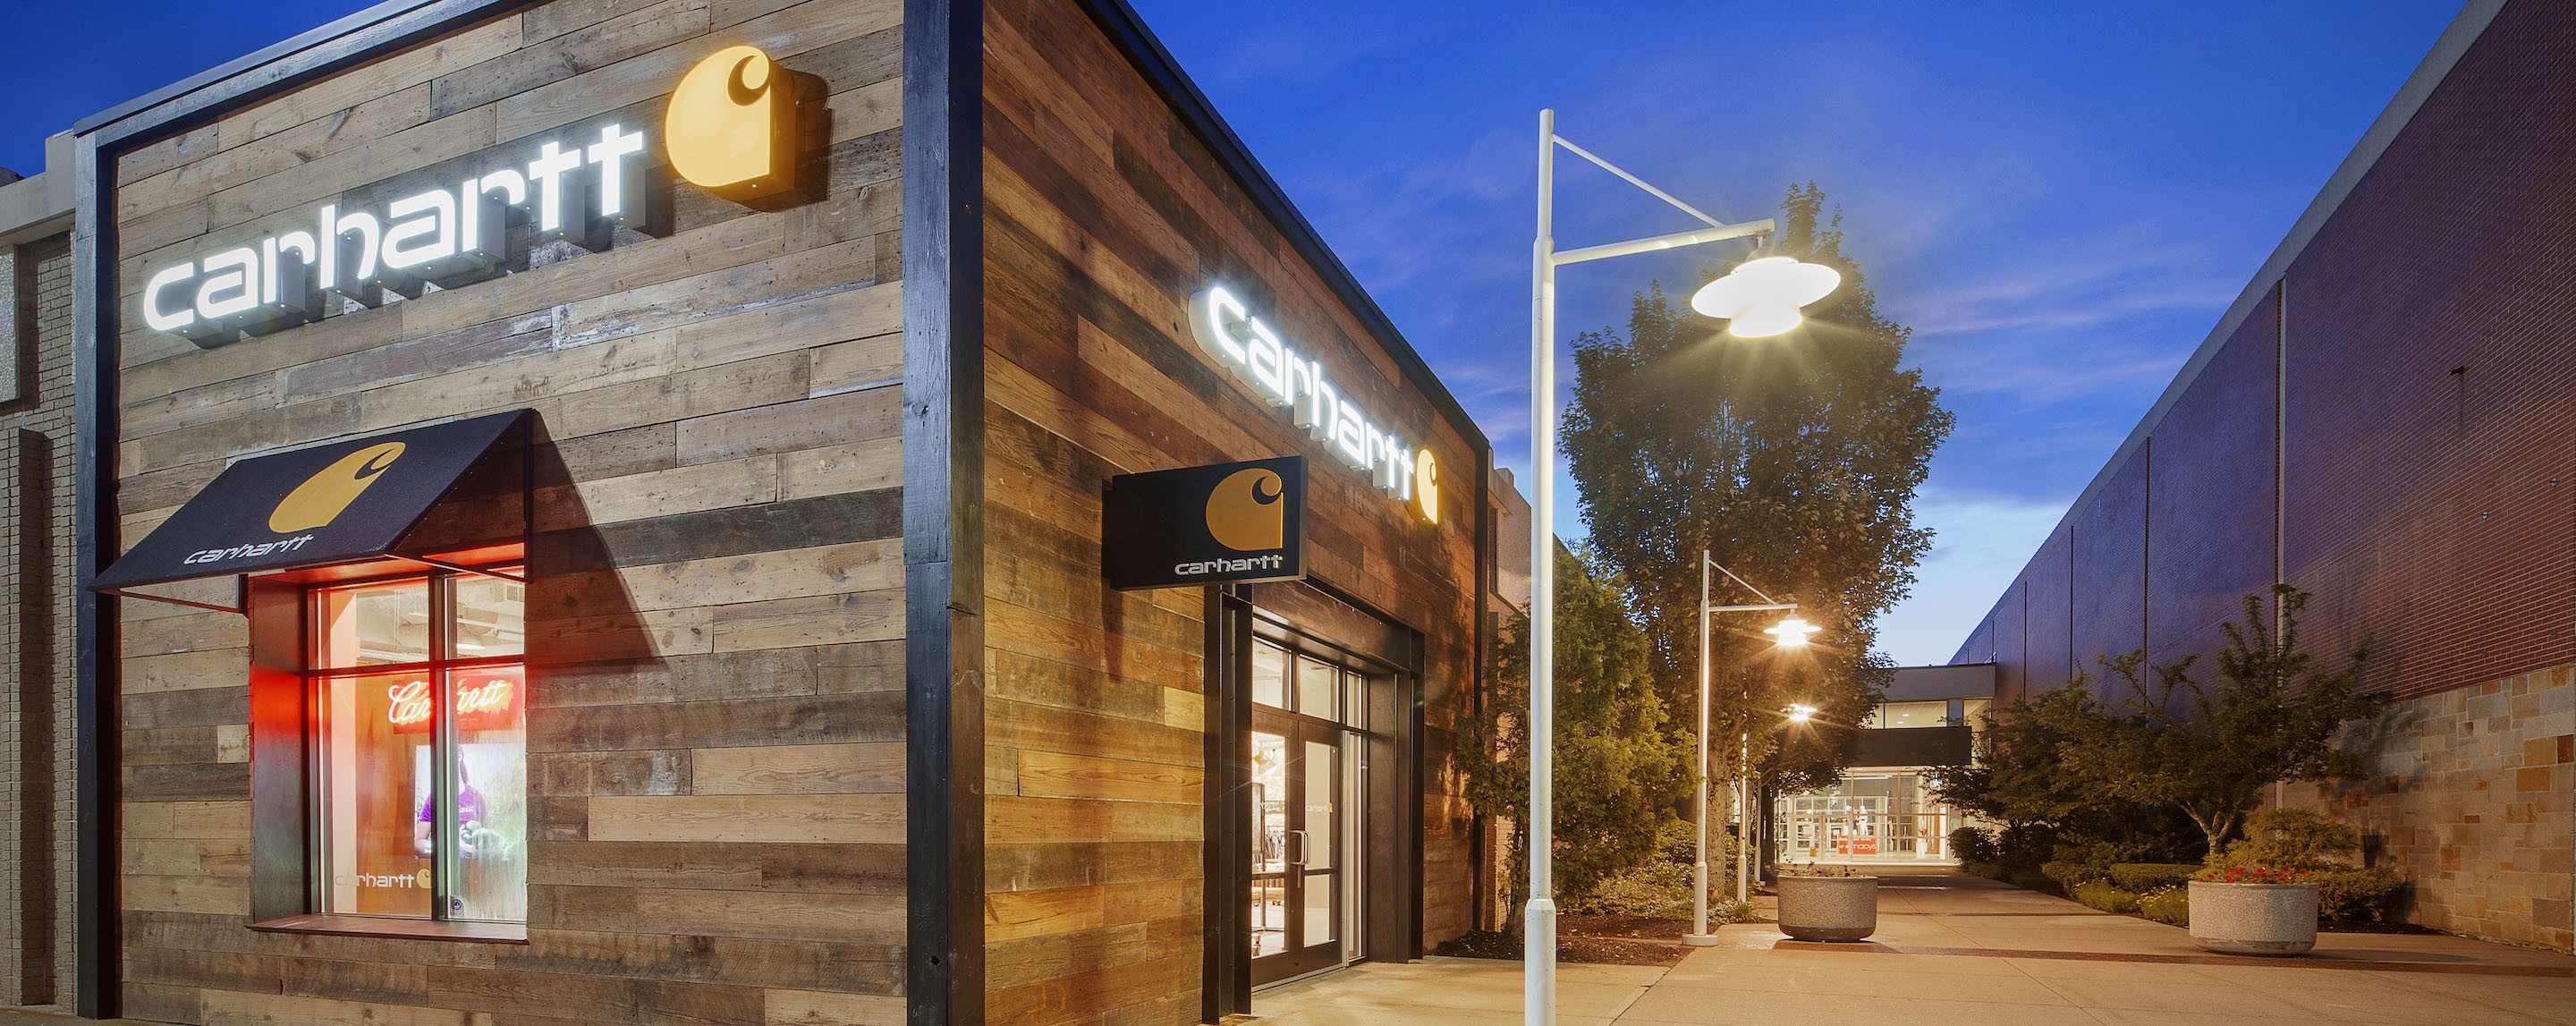 A light stands in the alley of a Carhartt store with trees in the alley.